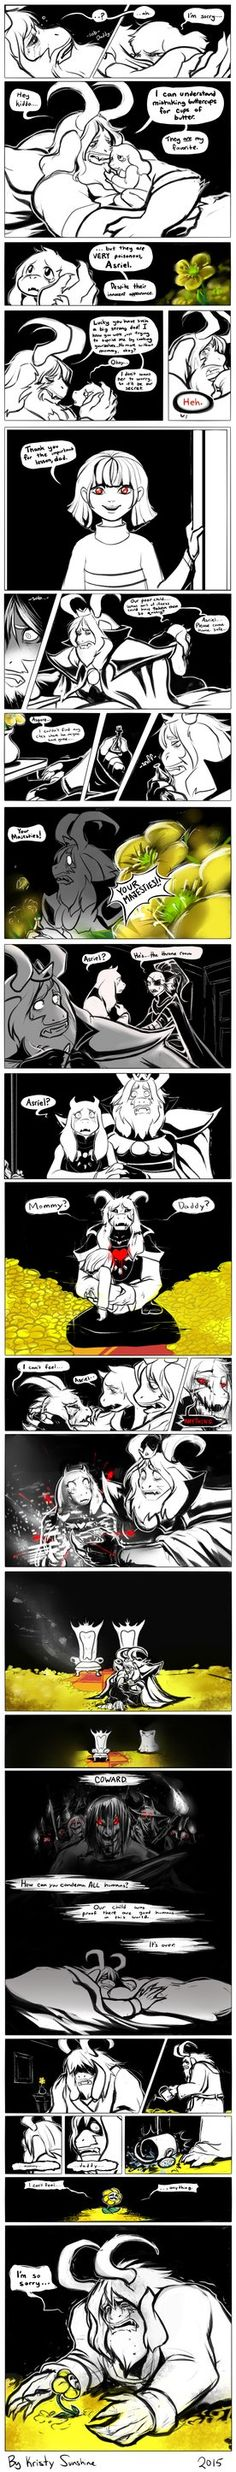 My take on maybe why asgore did what he did. Just a character study that once it got into my head, I had to draw it out. If you post this somewhere please credit properly.